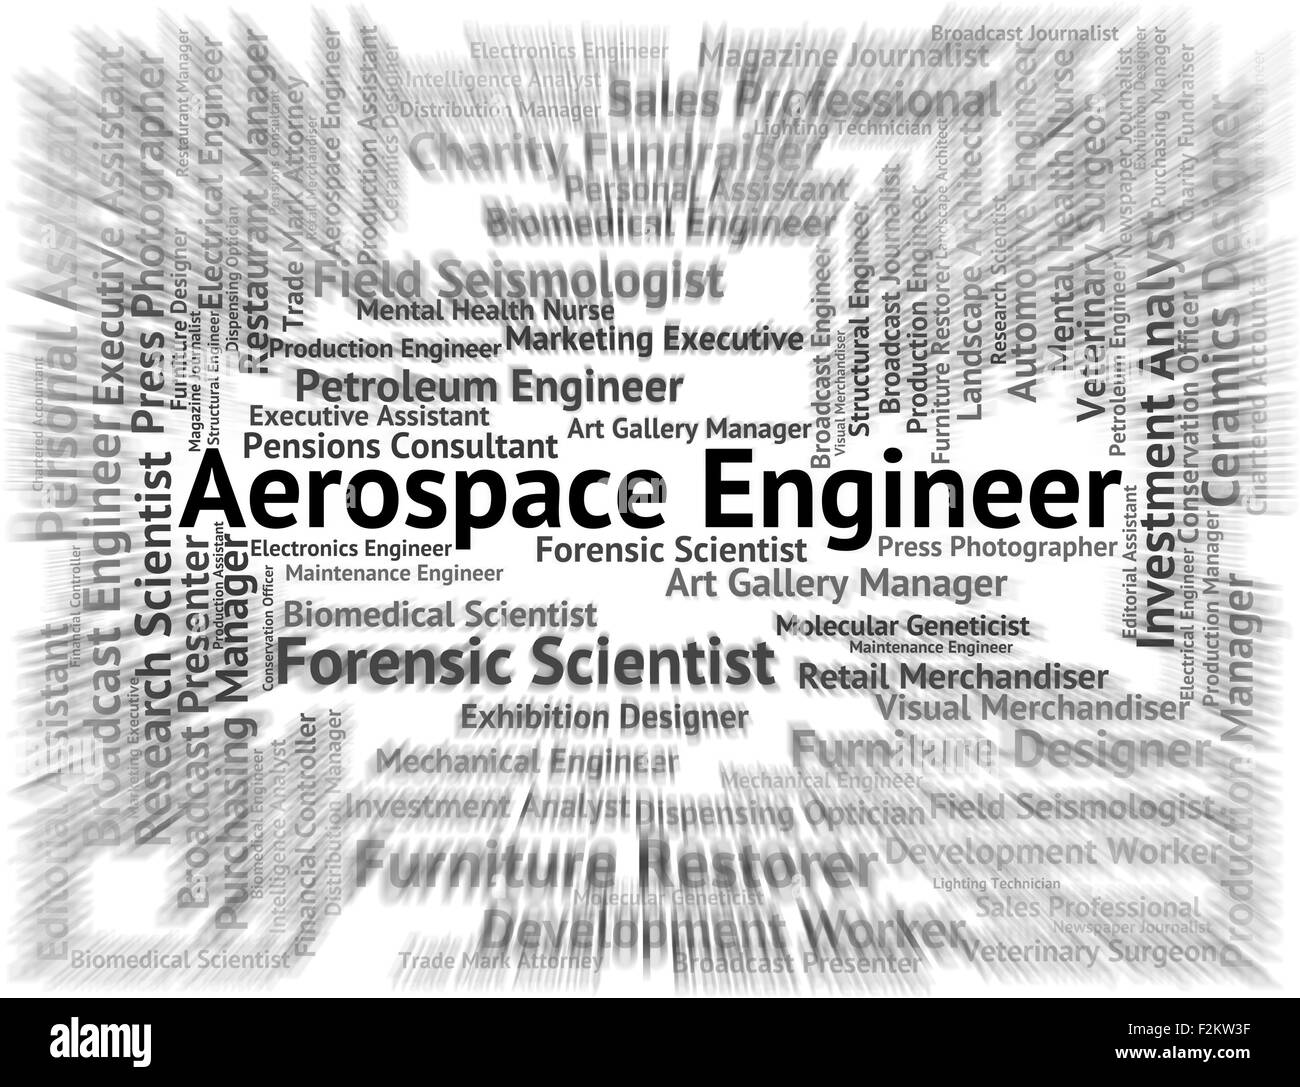 Aerospace Engineer Showing Aeronautics Recruitment And Aeronautical - Stock Image